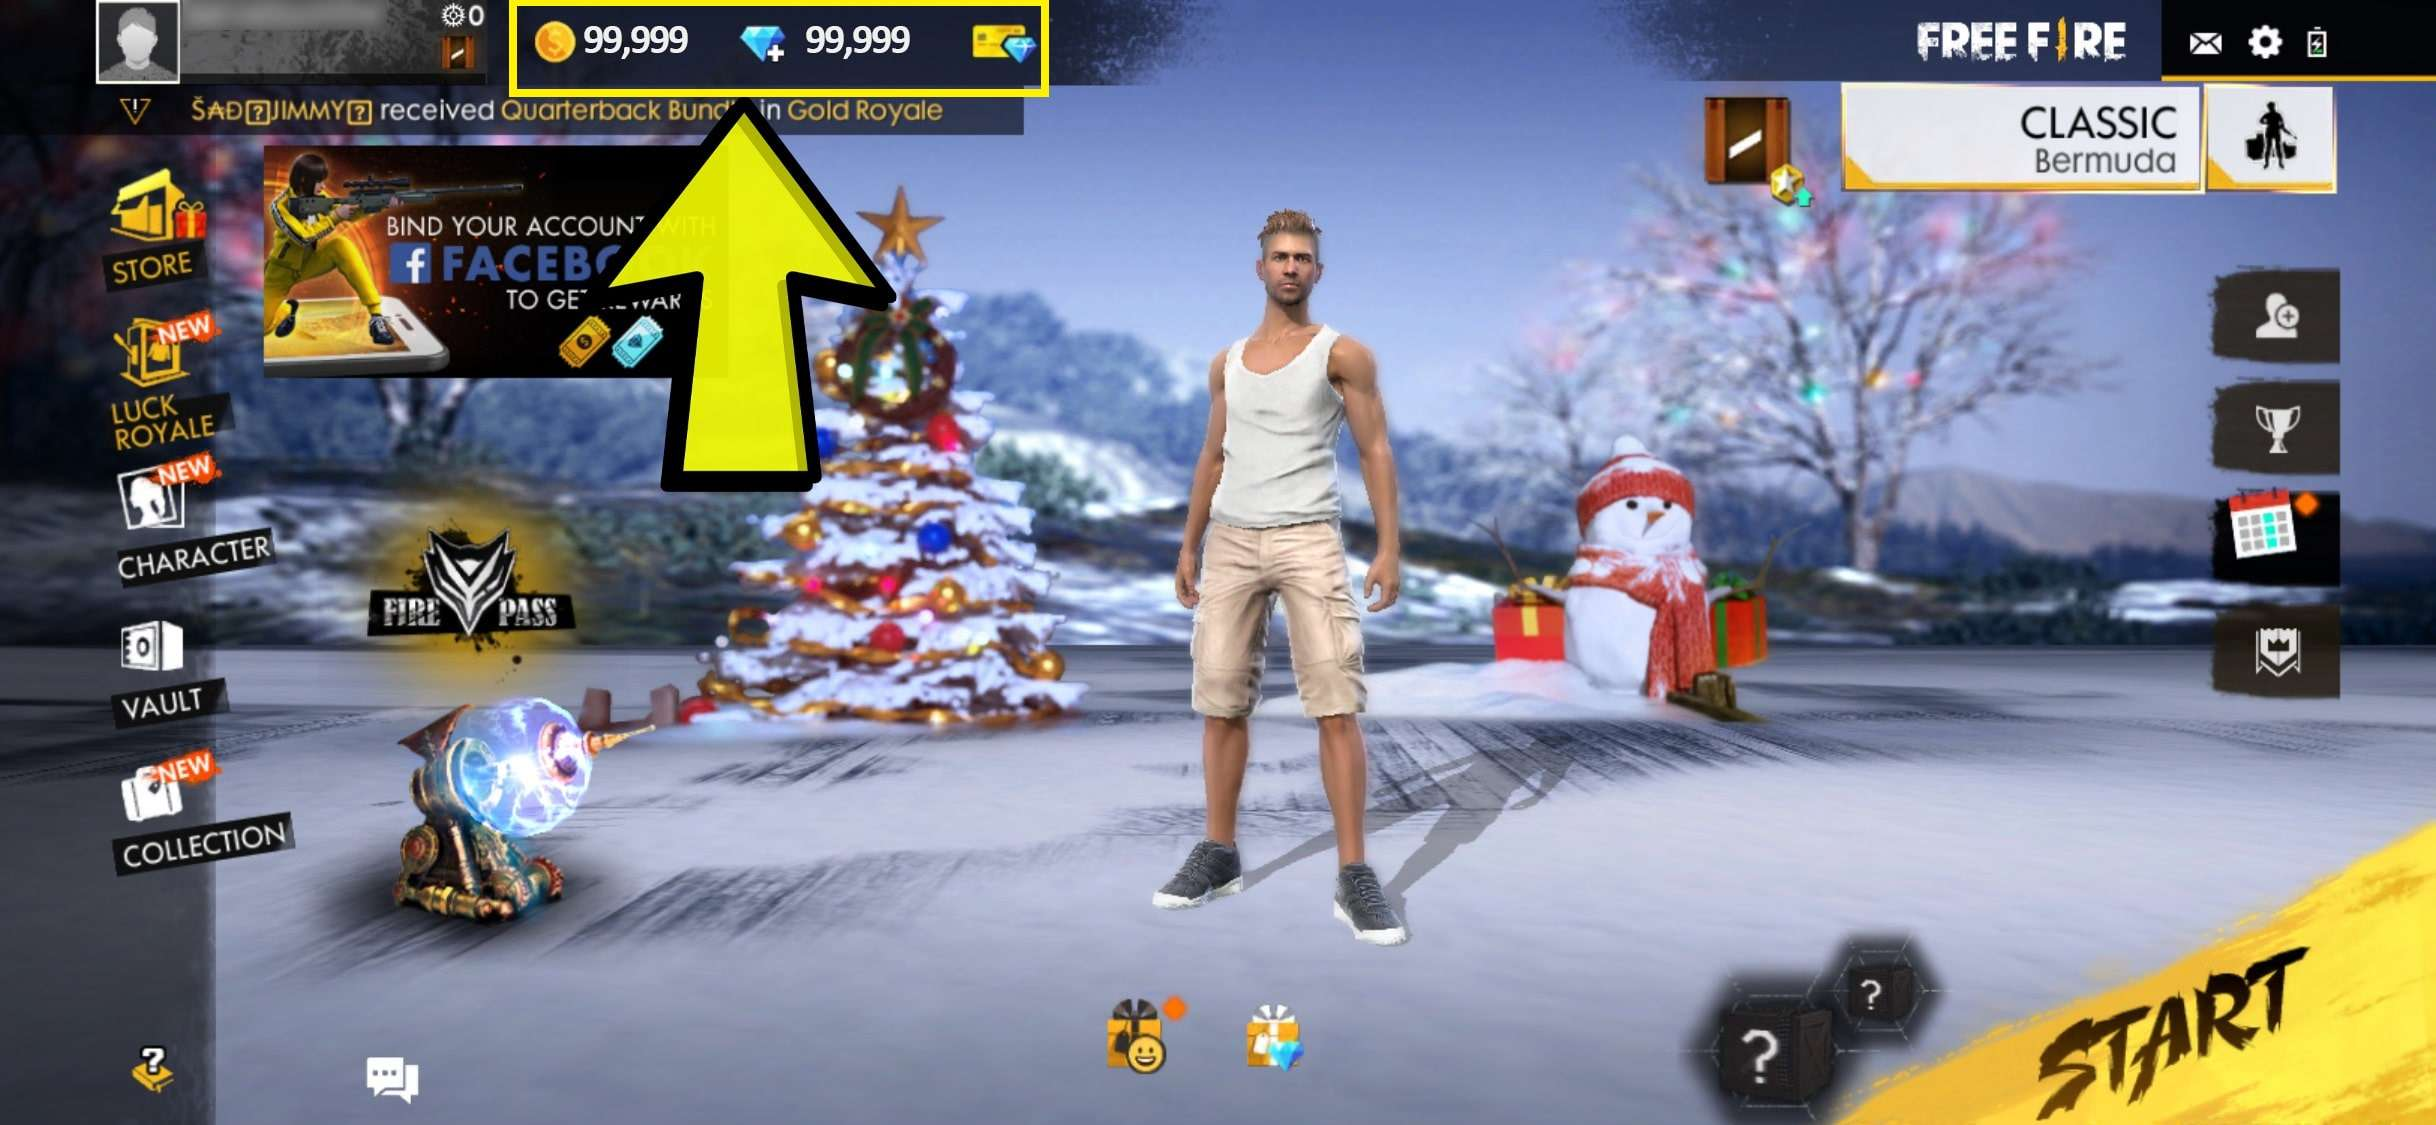 Get Unlimited Diamonds And Coins In Free Fire - Garena Free Fire